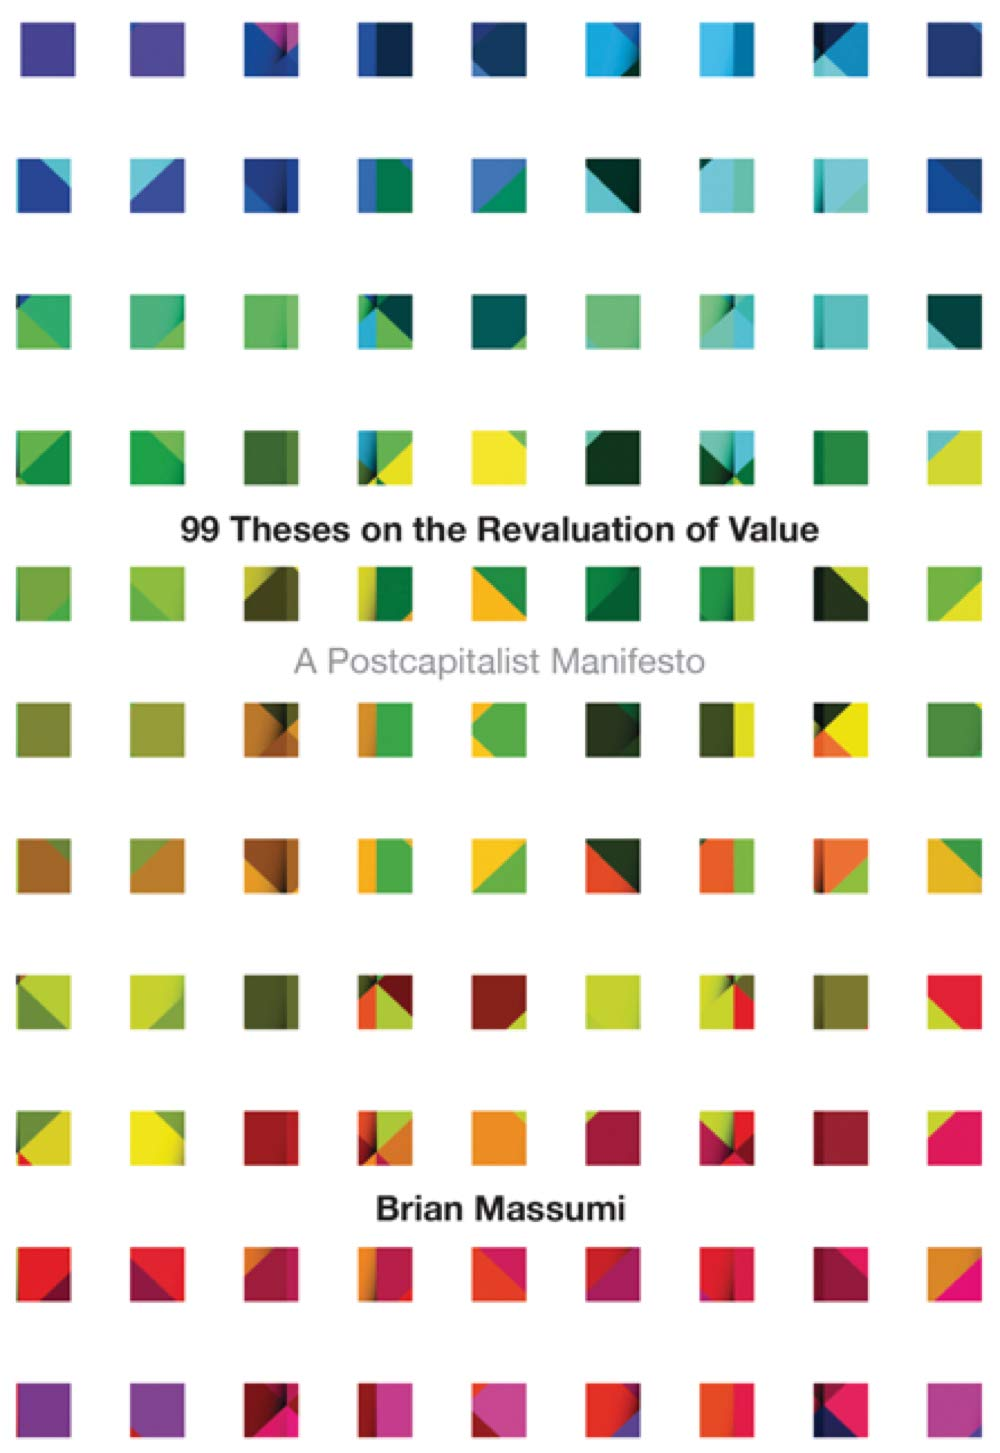 99 Theses on the Revaluation of Value: A Postcapitalist